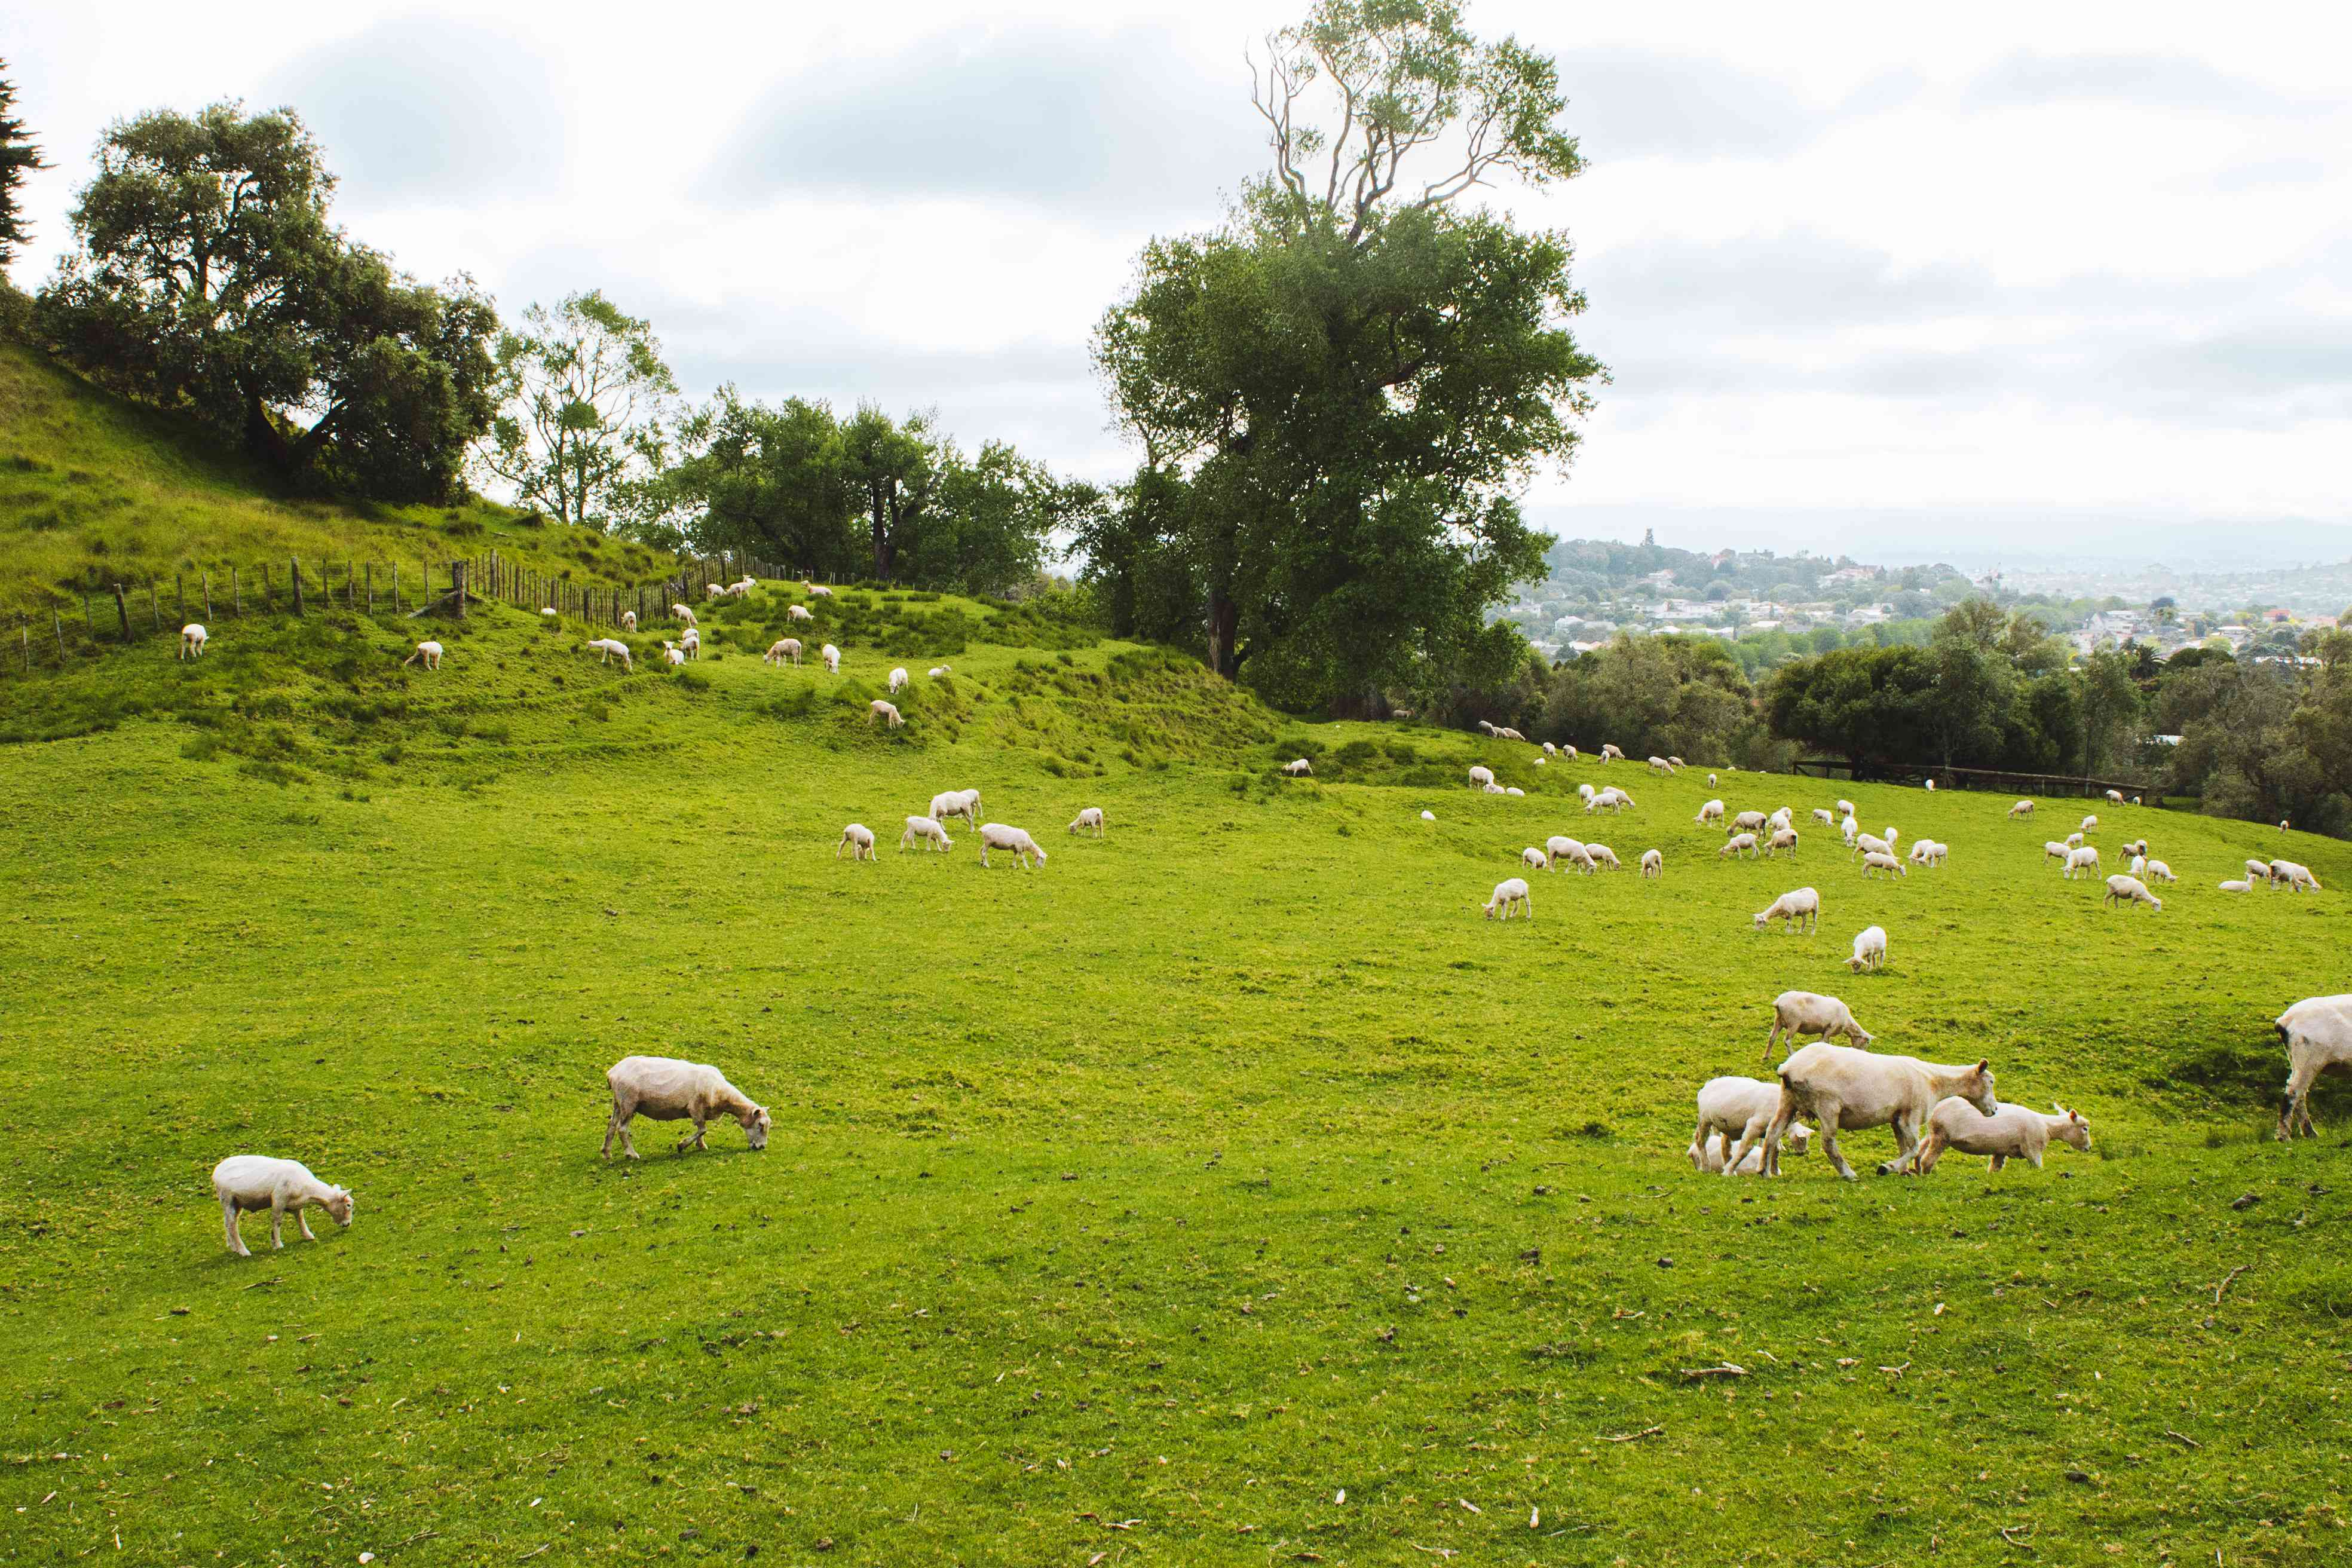 A heard of sheep grazing in Cornwall Park